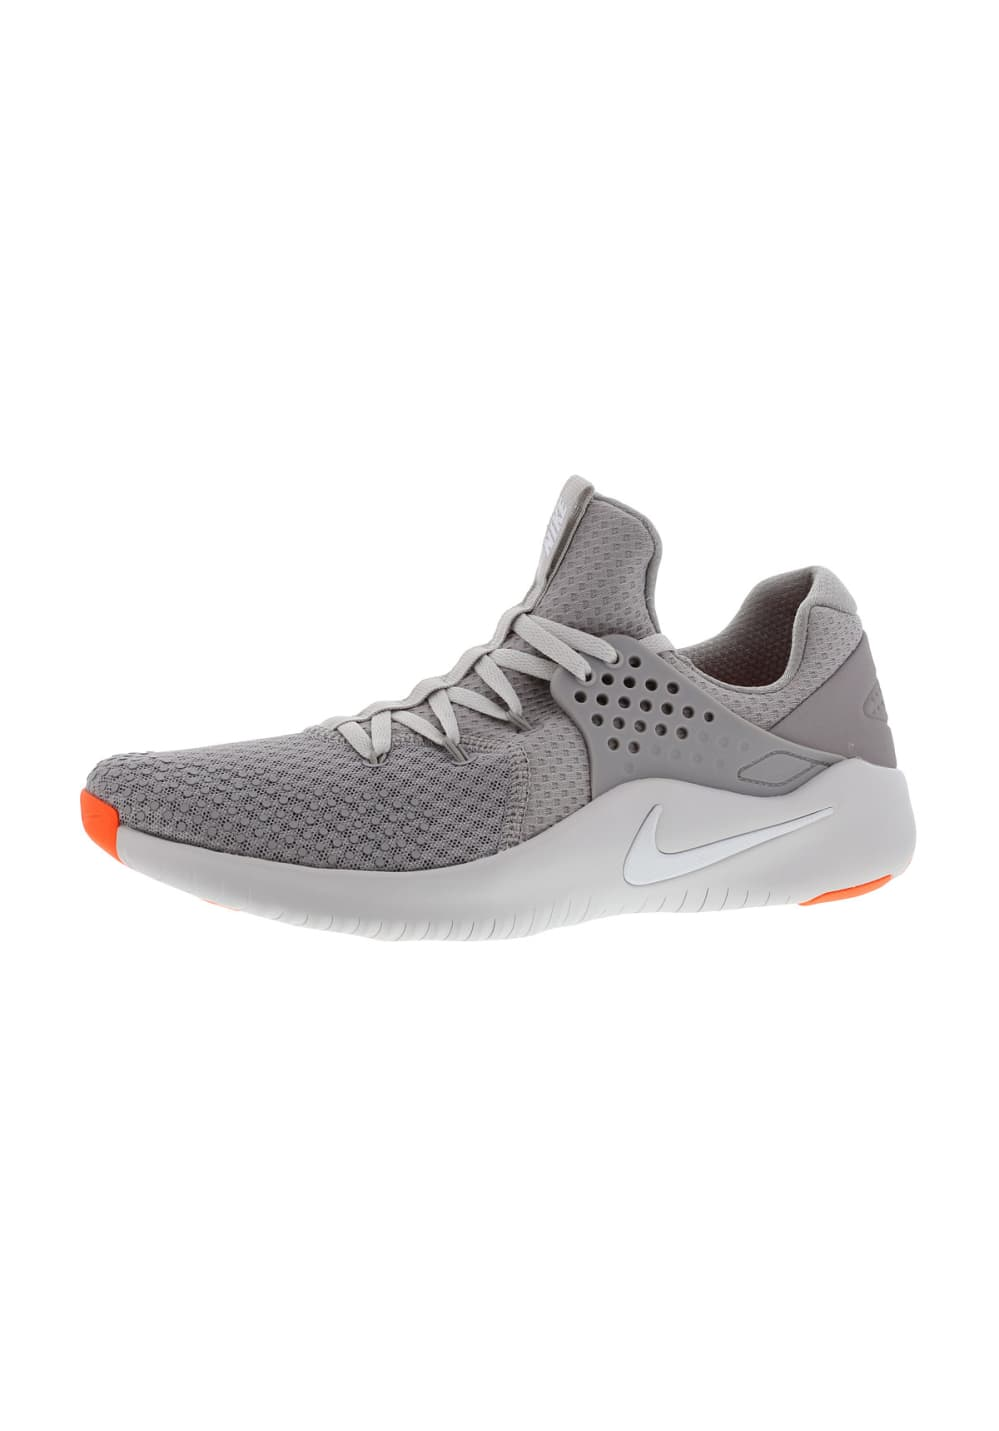 6d50697387c3 Nike Free Tr V8 - Fitness shoes for Men - Grey